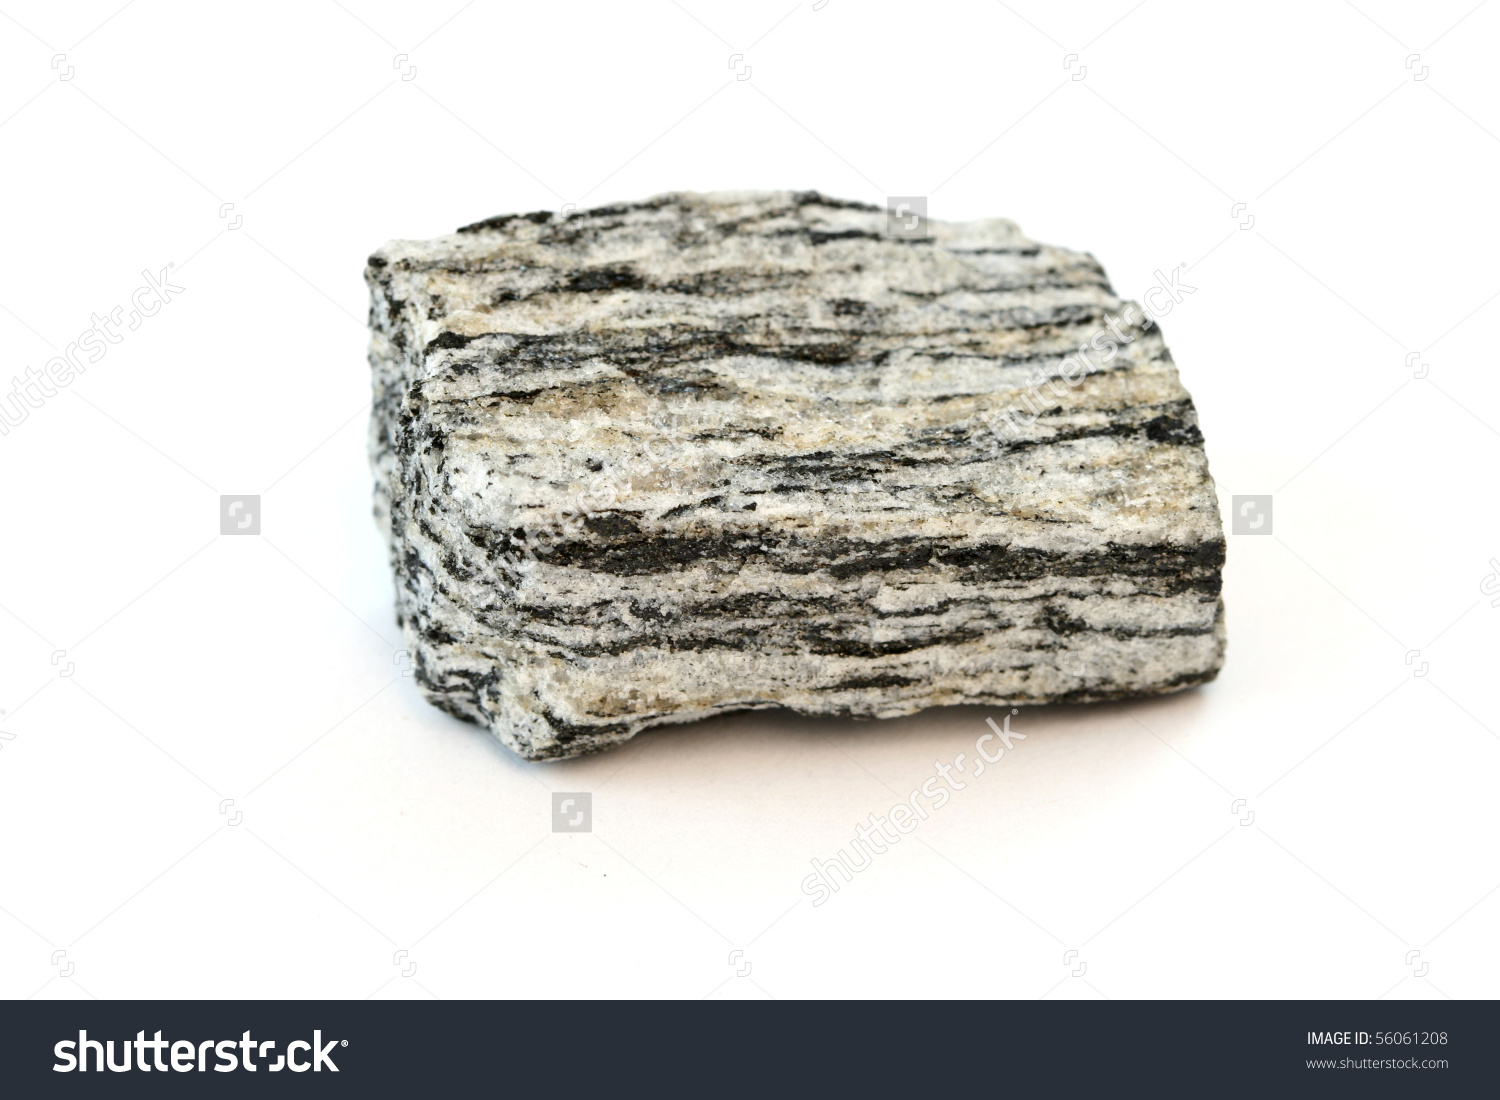 Isolated Sample Rock Gneiss Stock Photo 56061208.